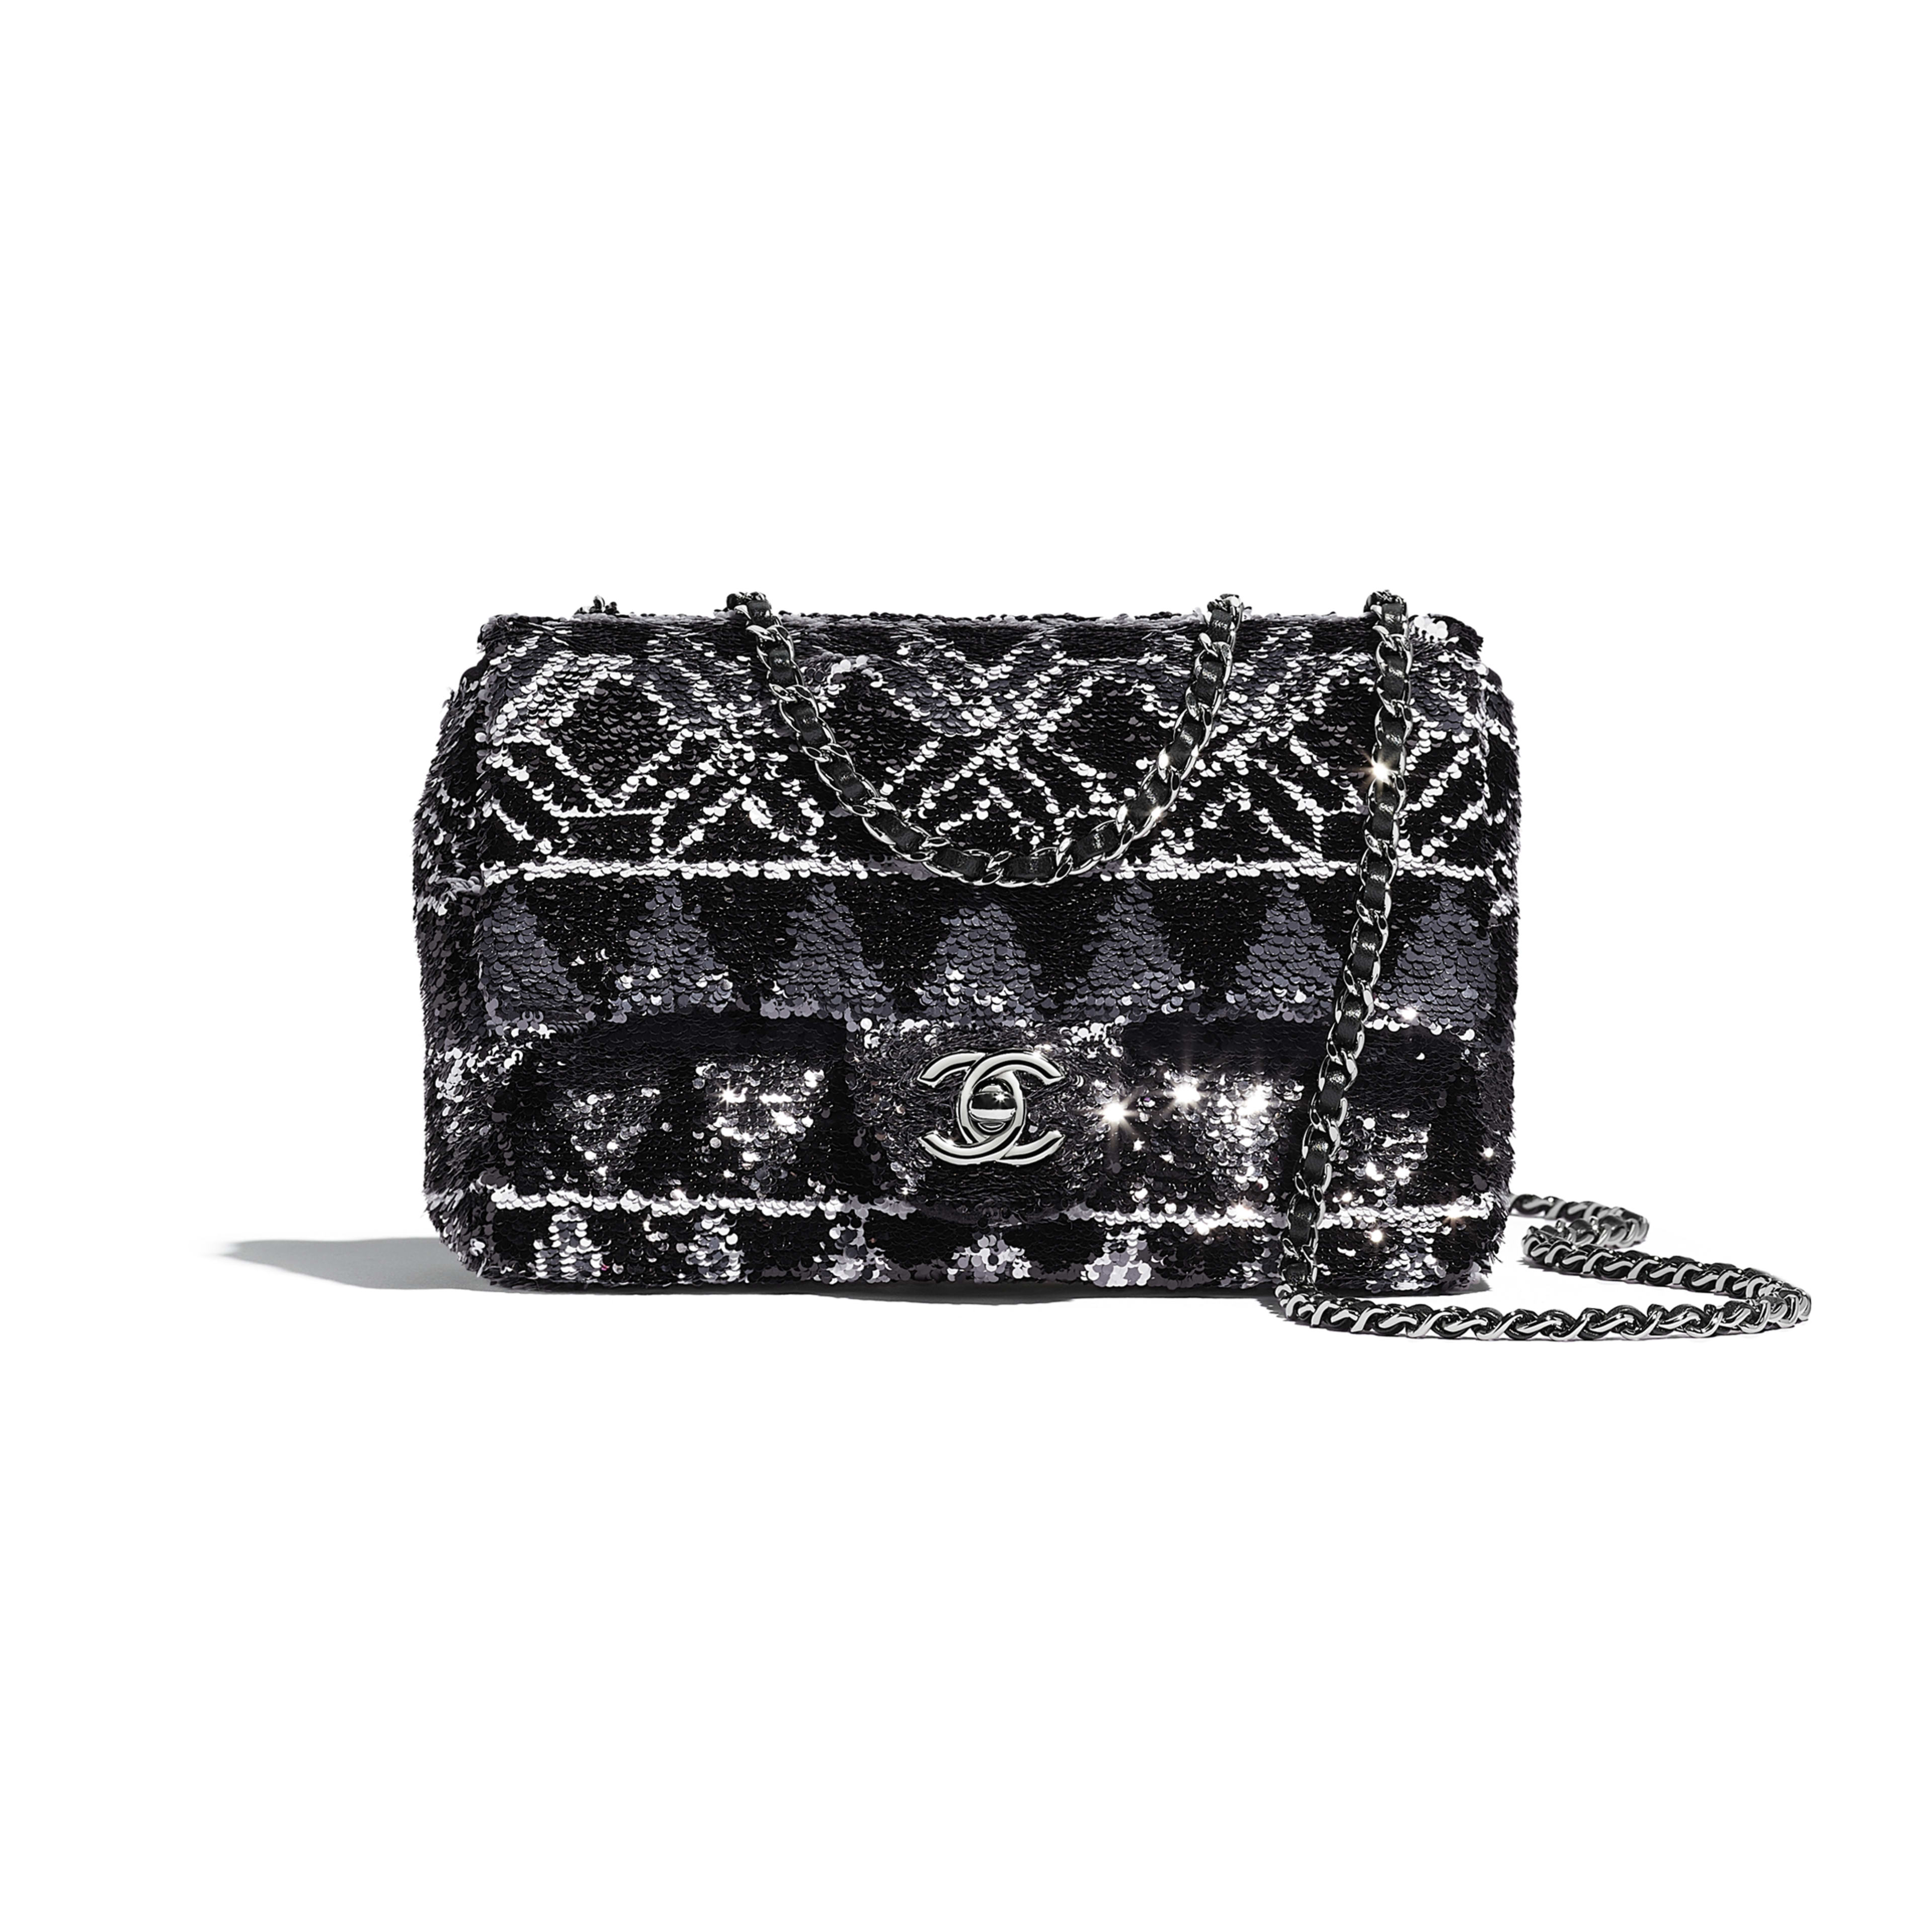 Flap Bag - Silver & Black - Sequins & Ruthenium-Finish Metal - Default view - see full sized version